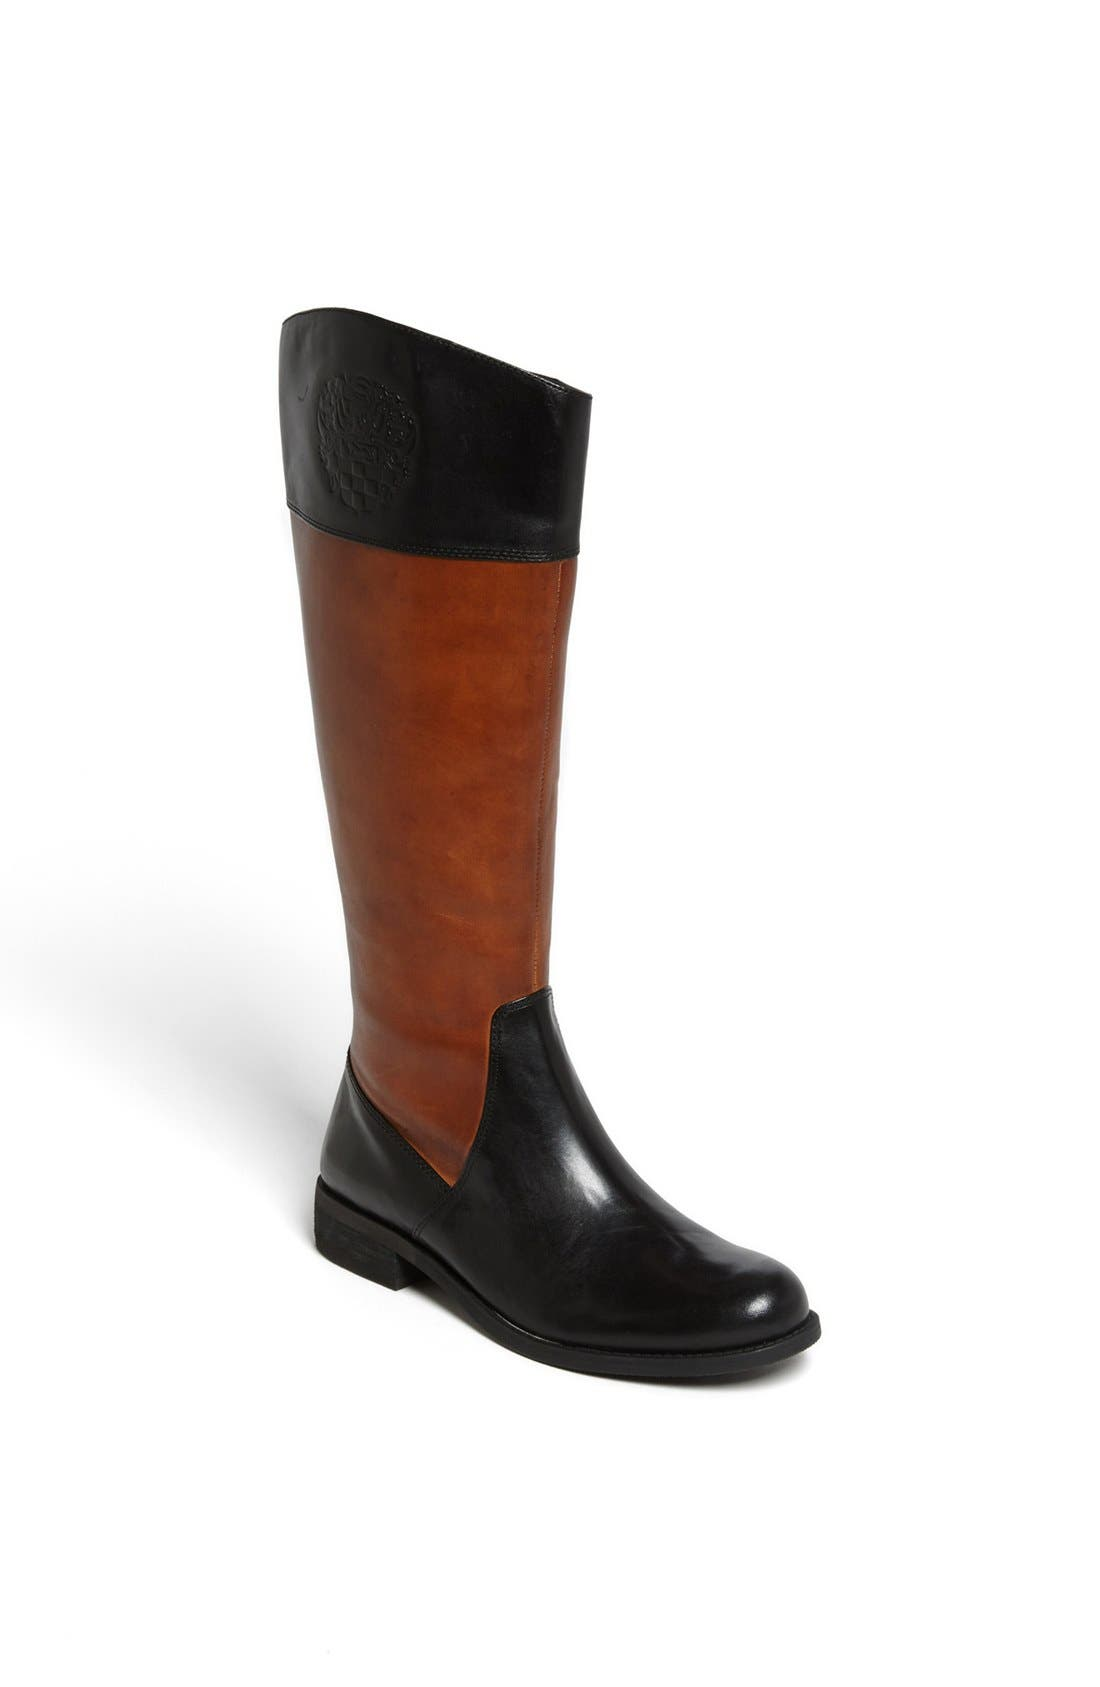 Alternate Image 1 Selected - Vince Camuto 'Kellini' Boot